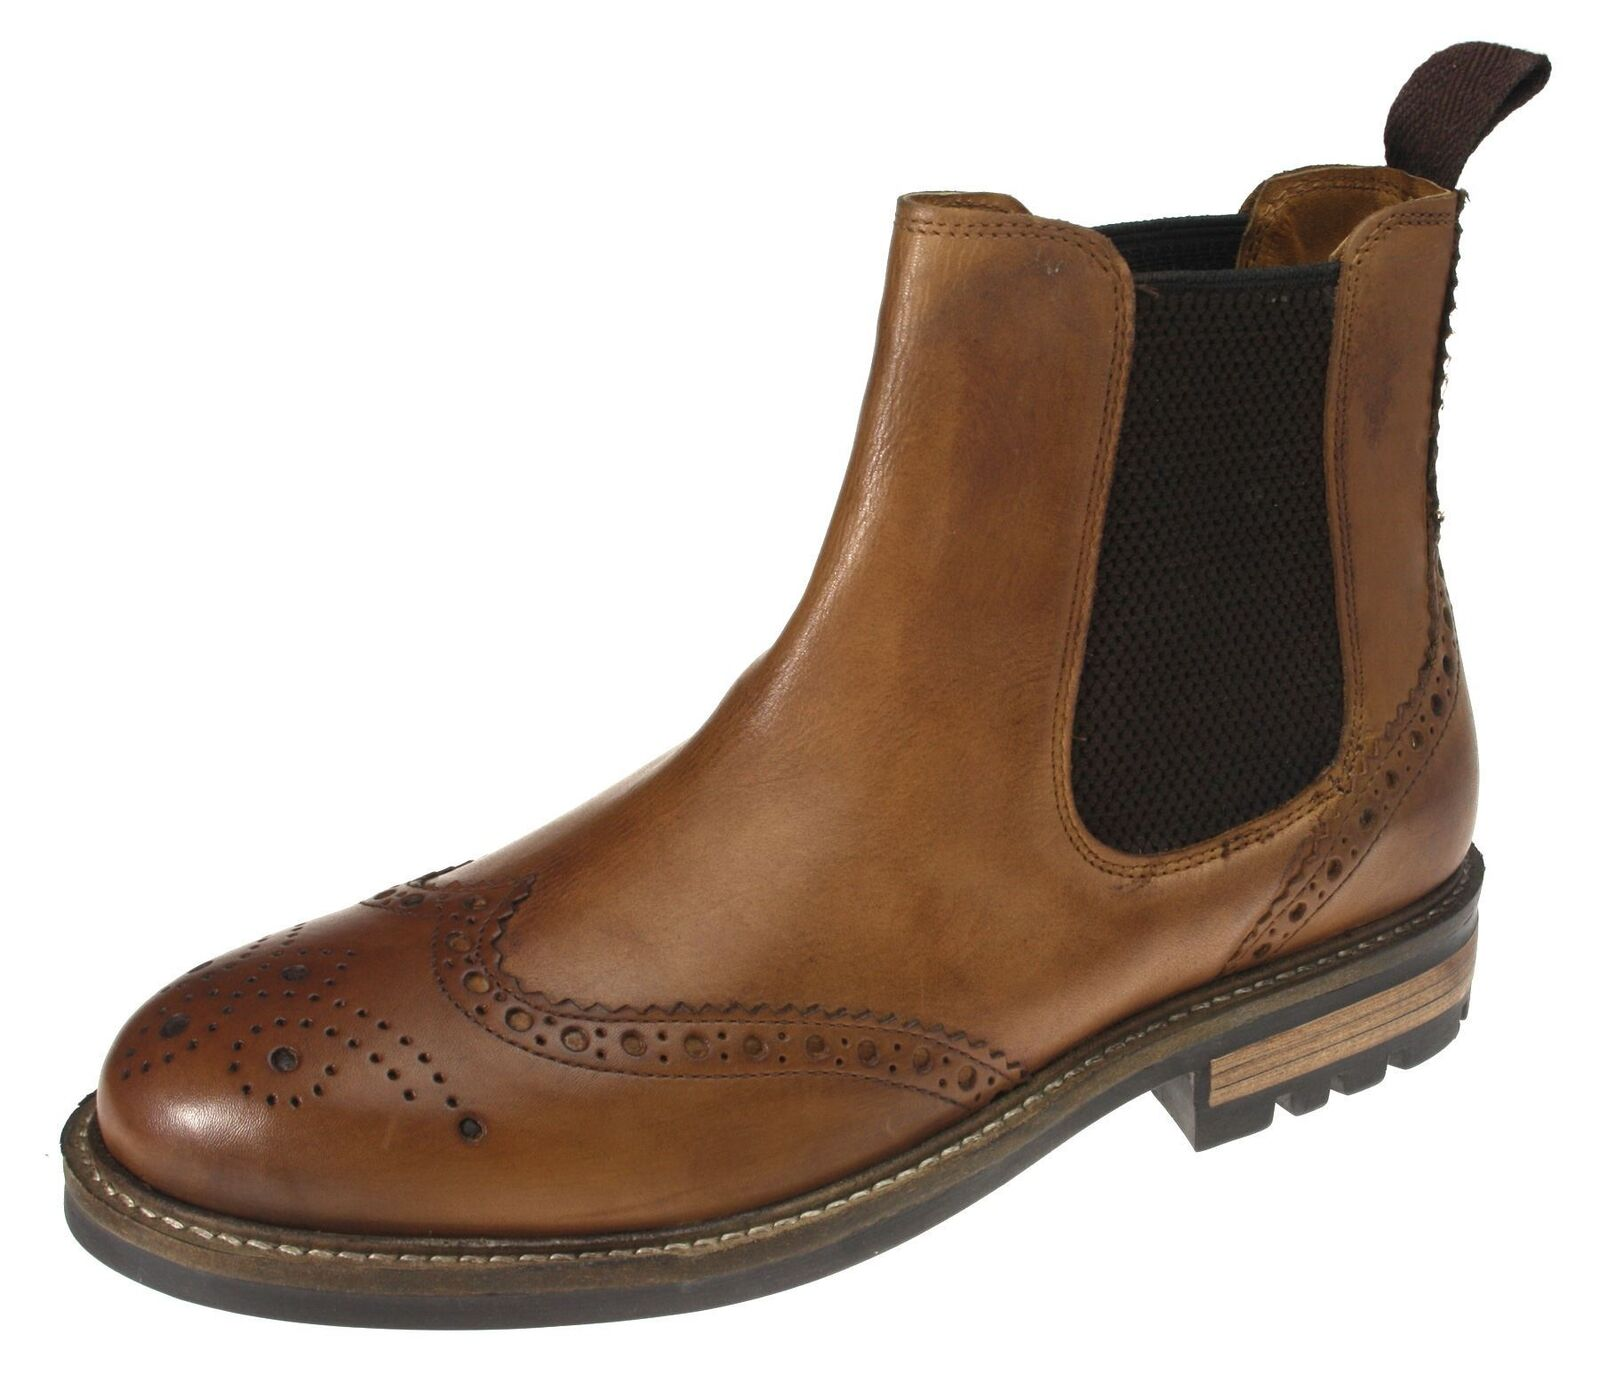 rot Tape Callan Tan braun Pull On Chelsea Ankle Stiefel Brogue Dealer Leather